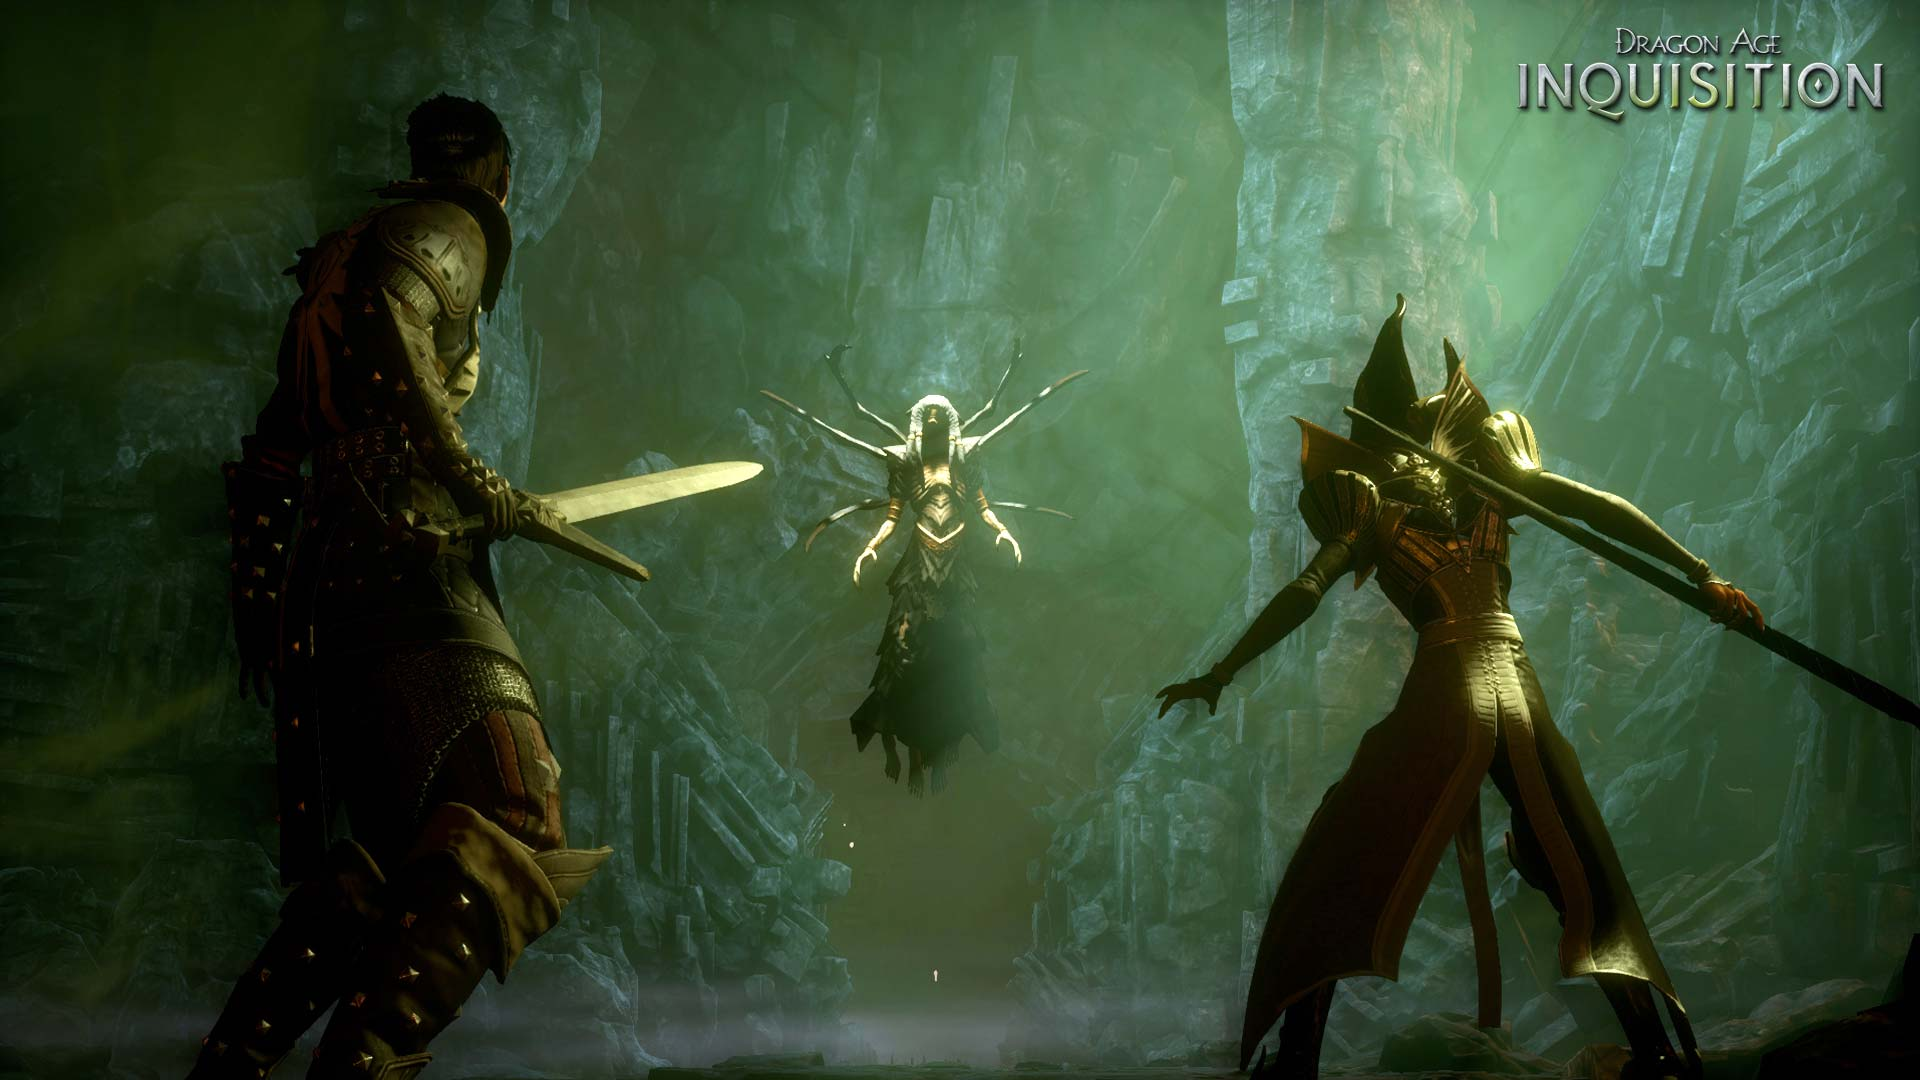 """Dragon Age: Inquisition"" Started Off Differently - Started As Multiplayer-Only"